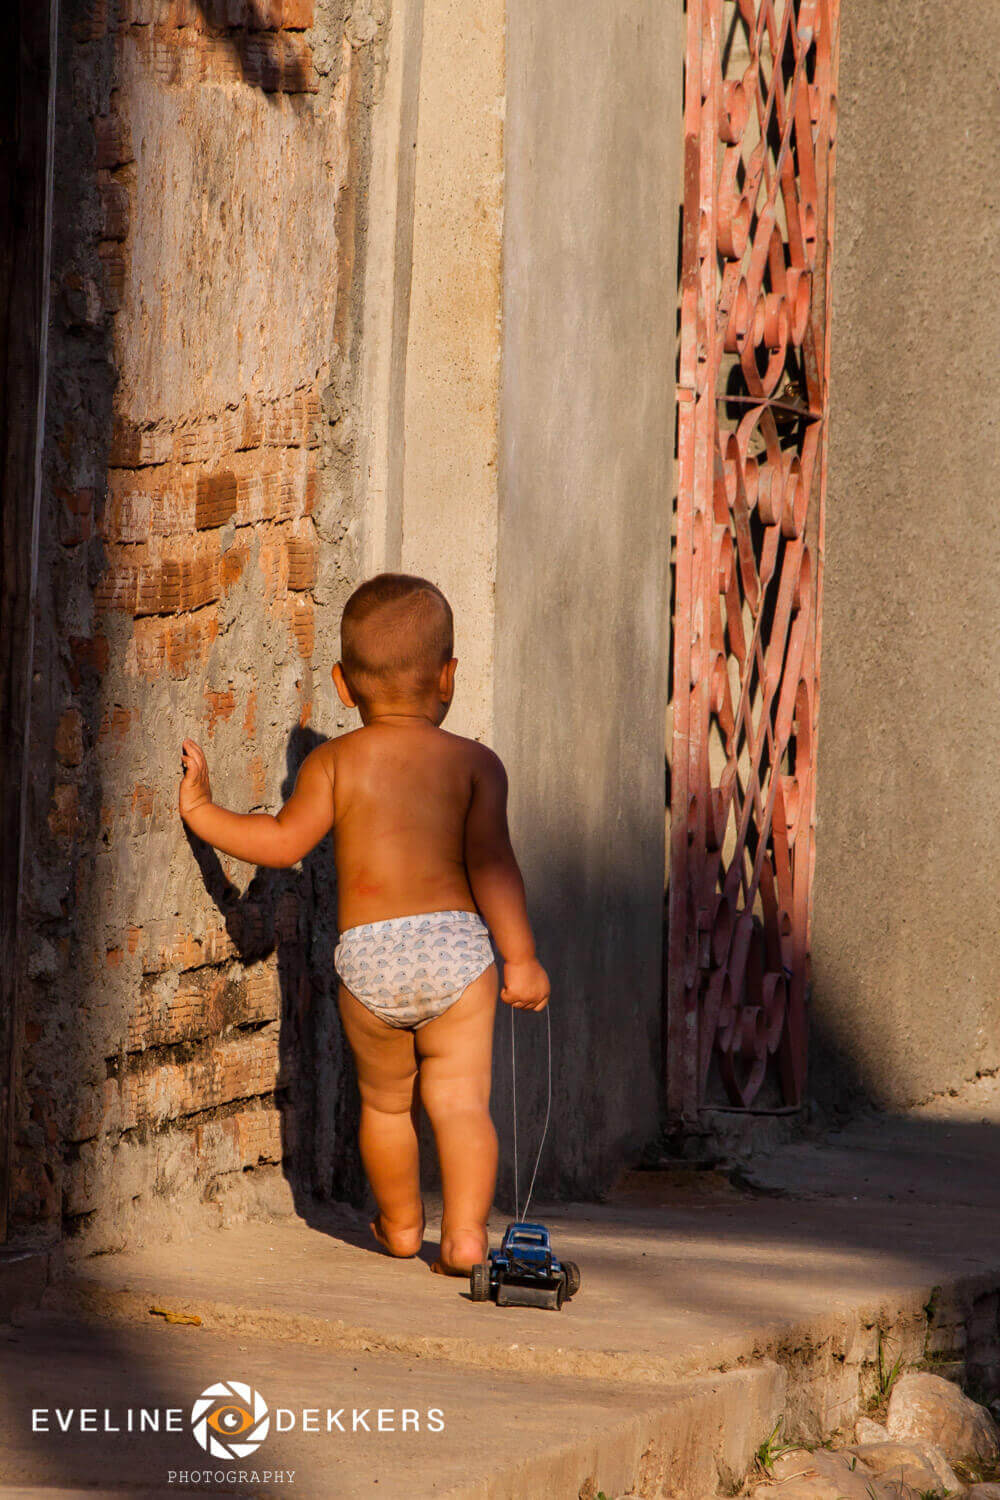 Playing at the streets of Trinidad - Cuba